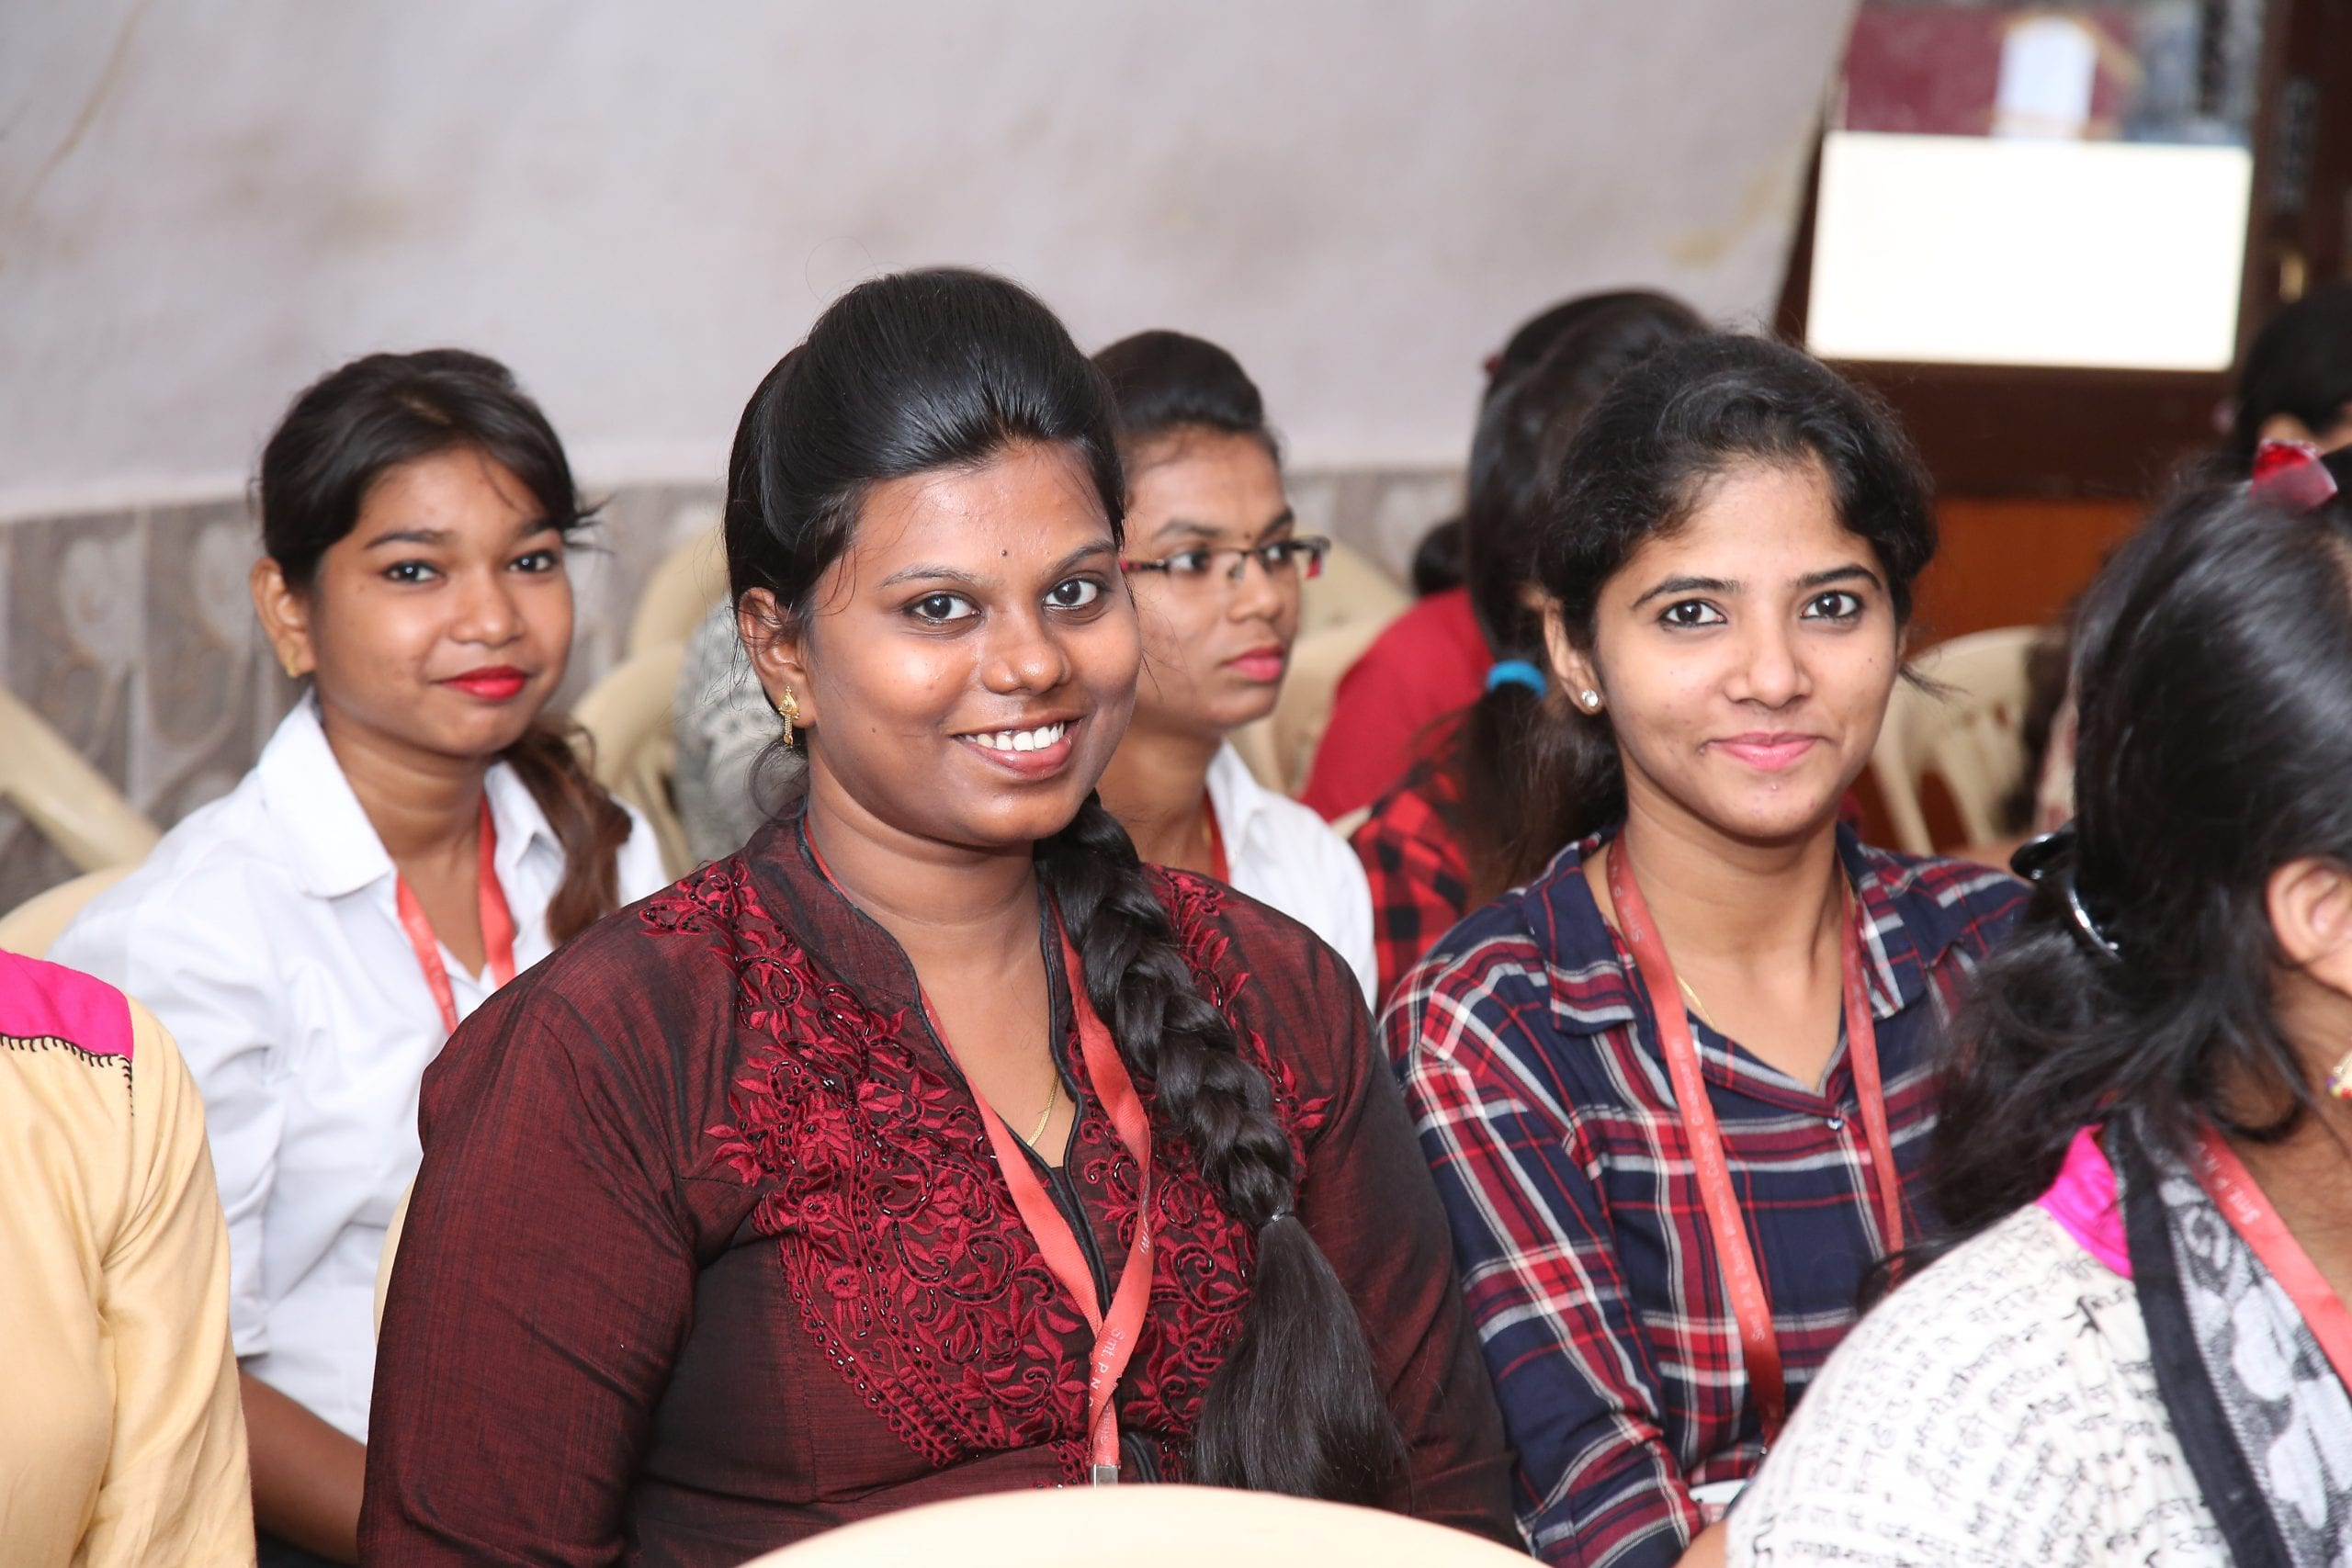 Students participate in a youth employability program in India